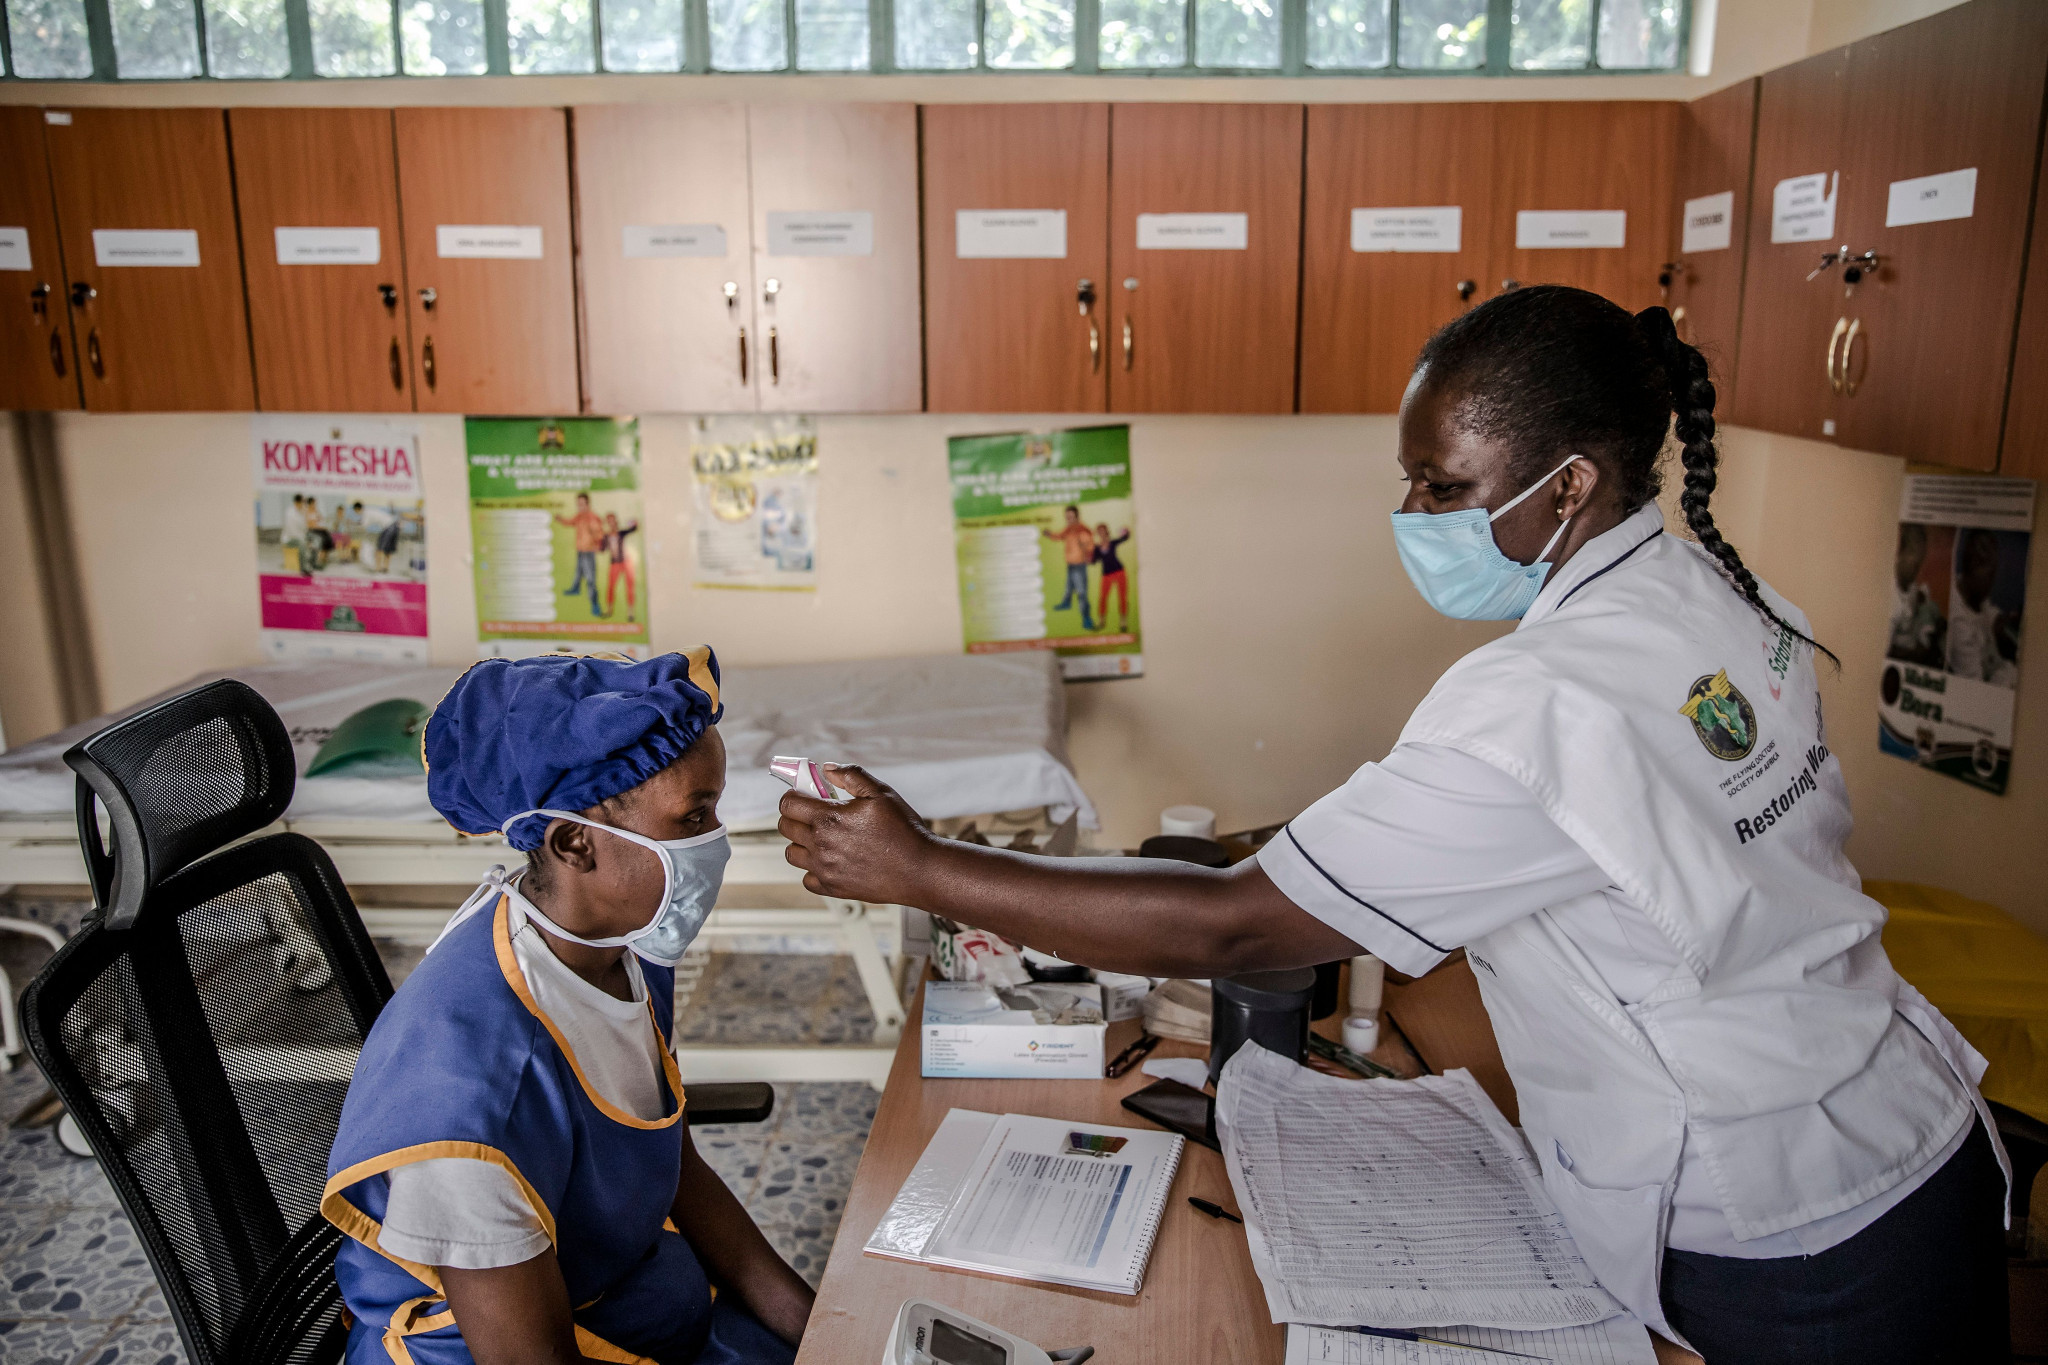 IOC and ANOC among organisations to thank medical workers on World Health Day